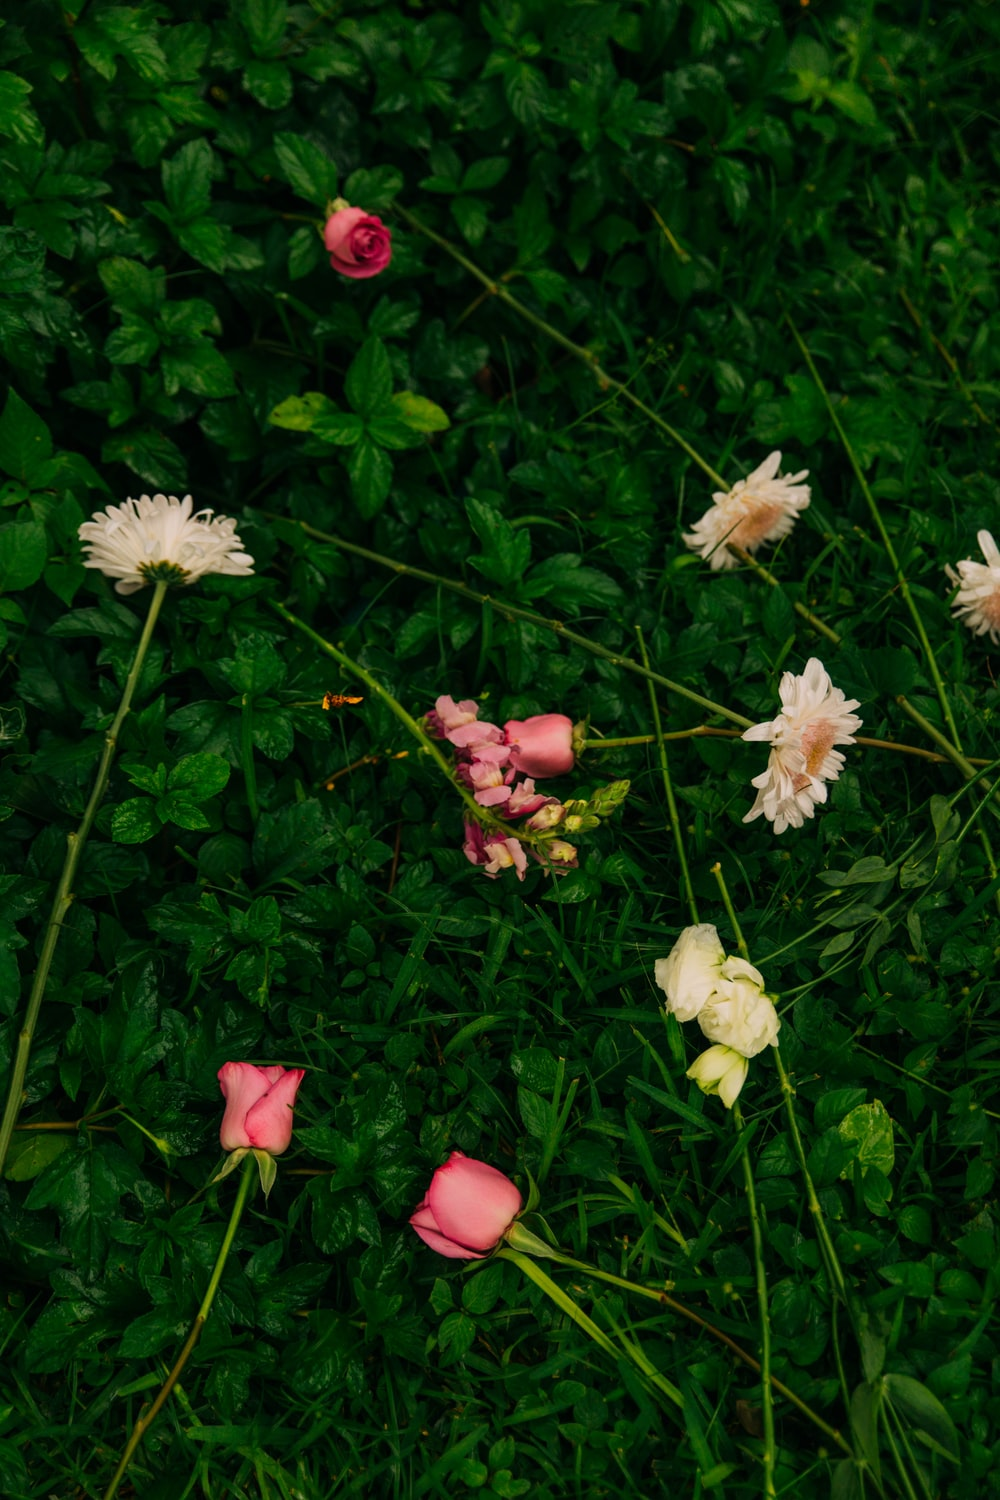 pink and white flowers beside plant